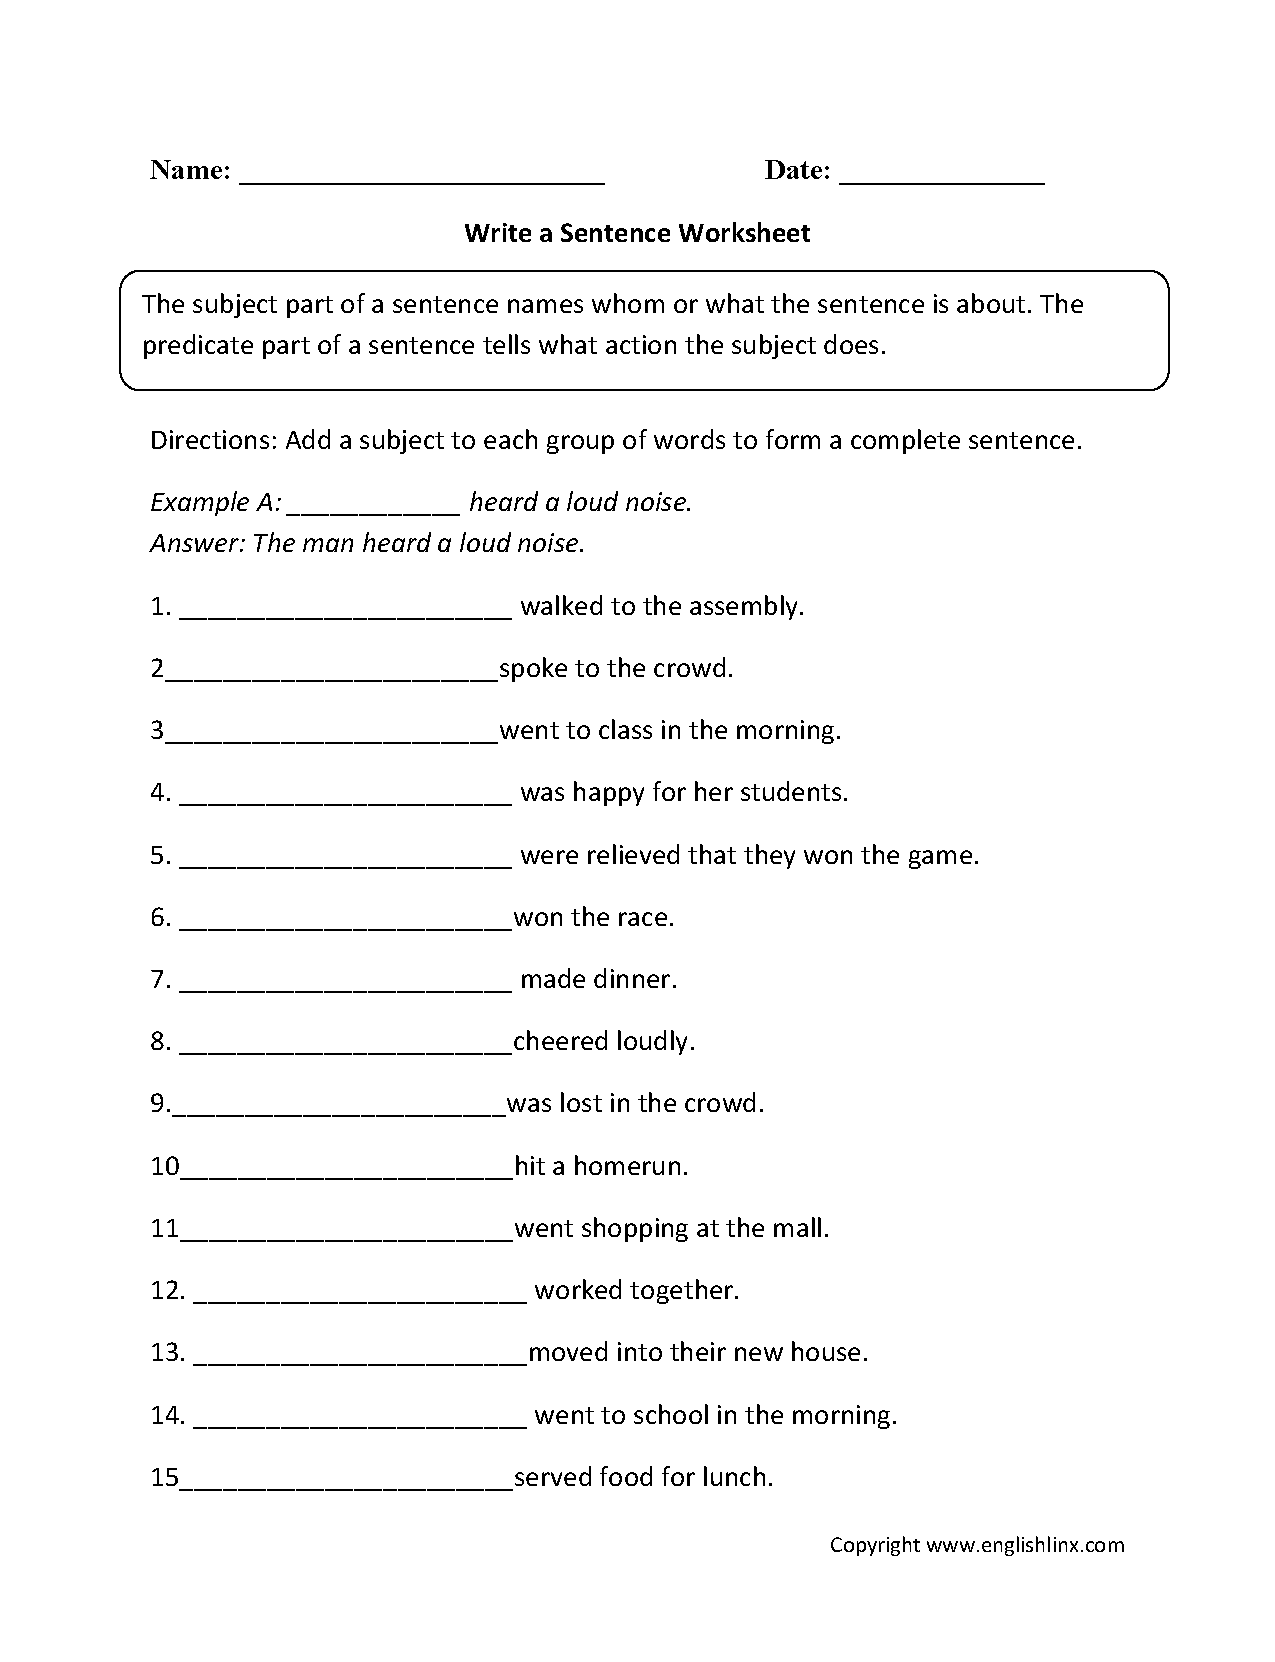 Types Of Sentences Based On Structure Worksheet